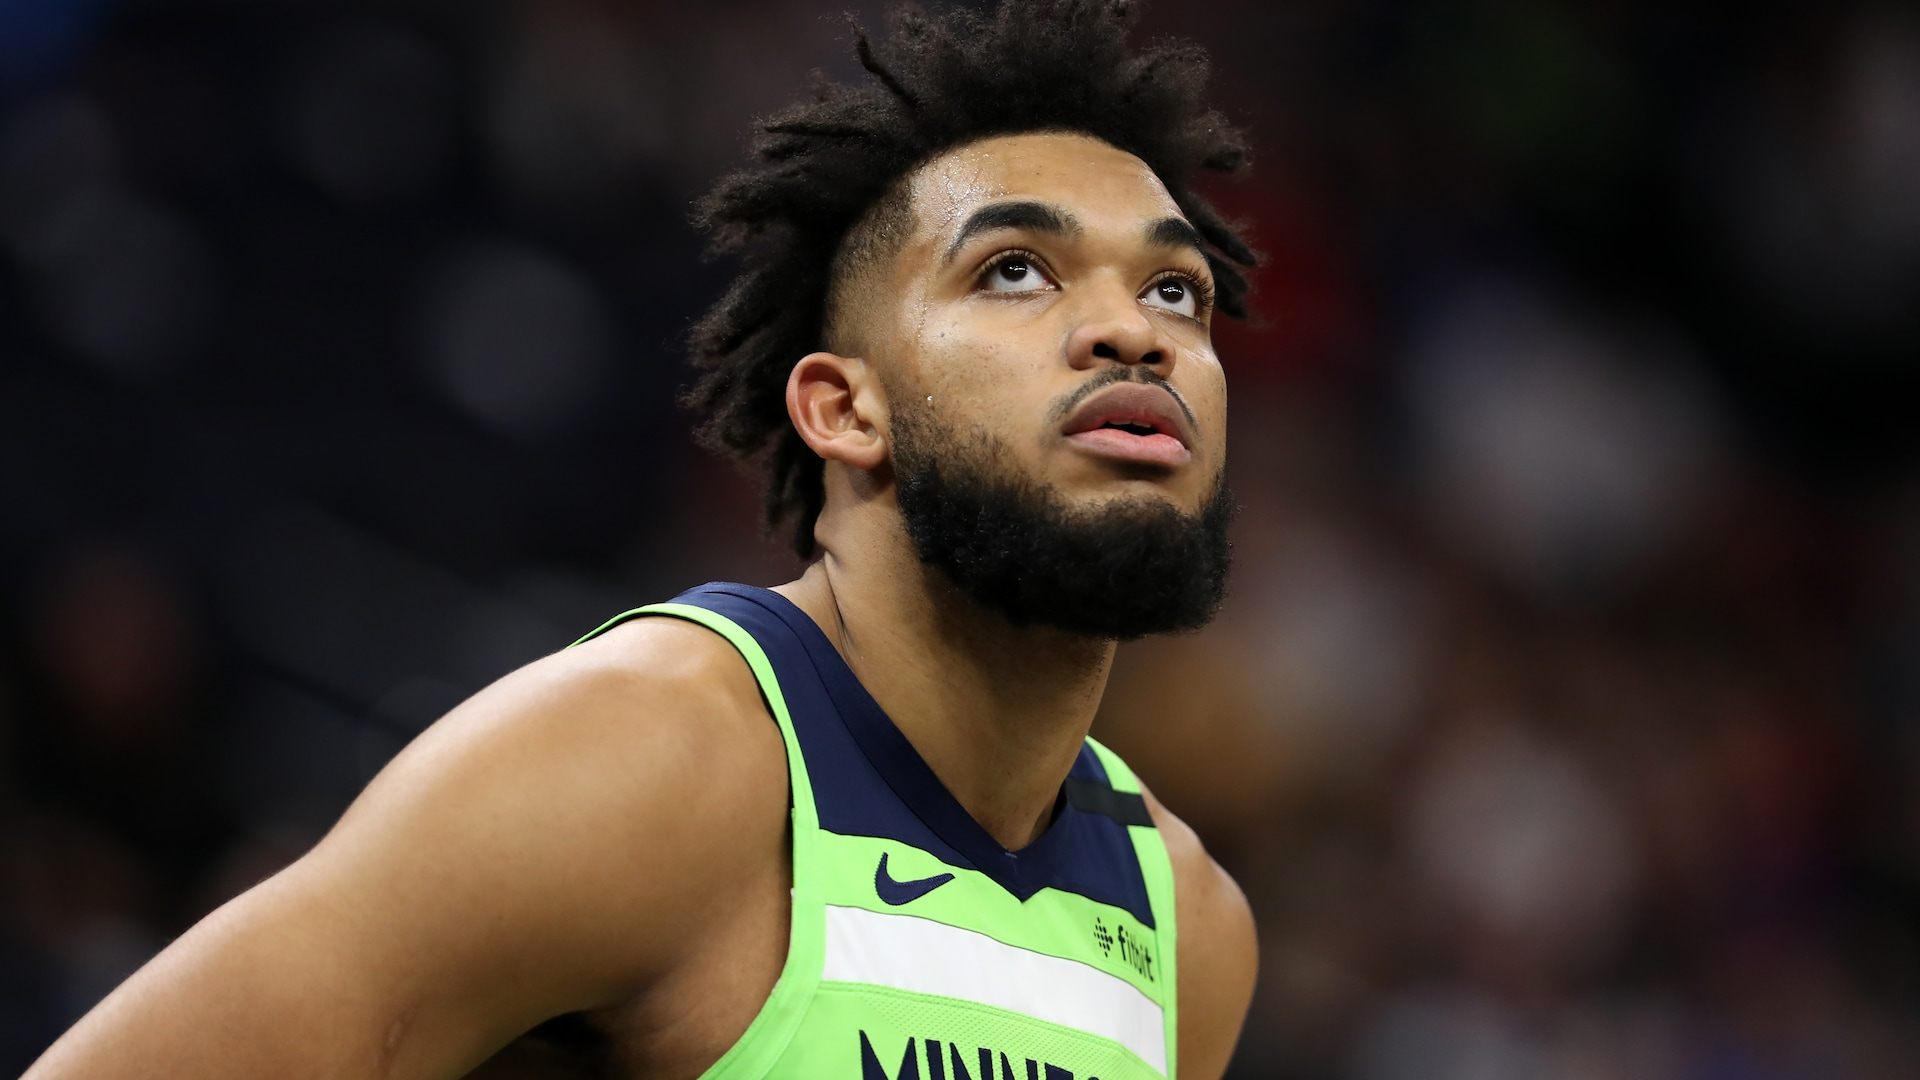 Timberwolves president: Karl-Anthony Towns 'is as untouchable as they come'